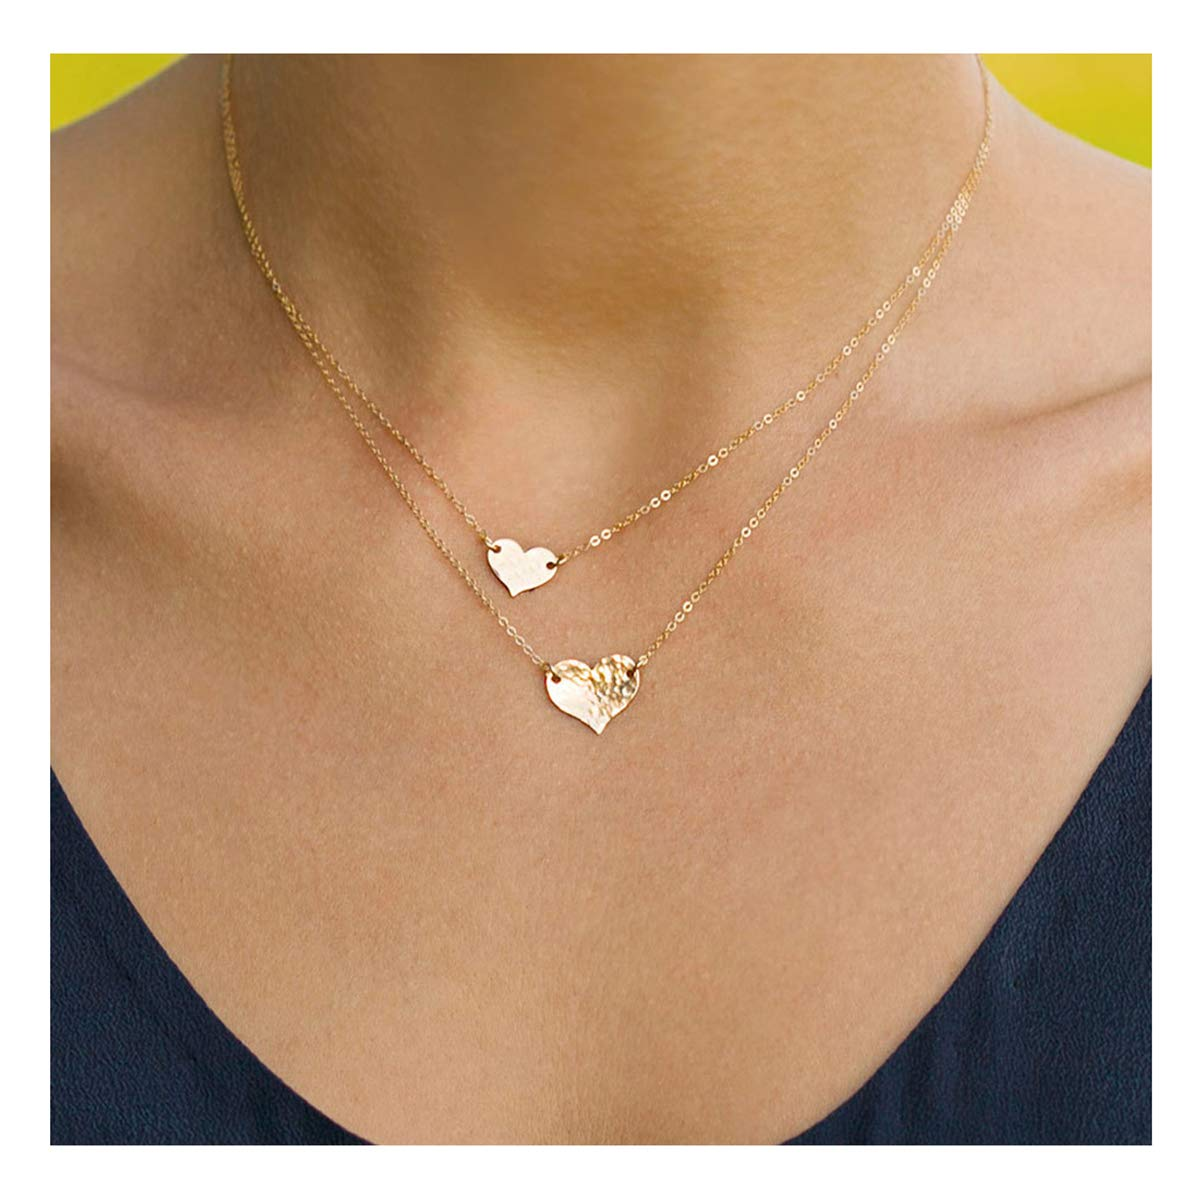 639d4006936 Amazon.com: VACRONA Gold Layered Heart Pendant Necklaces, 18K Gold Filled  Tiny Choker Dainty Cute Handmade Pendants Necklaces Jewelry for Women:  Jewelry